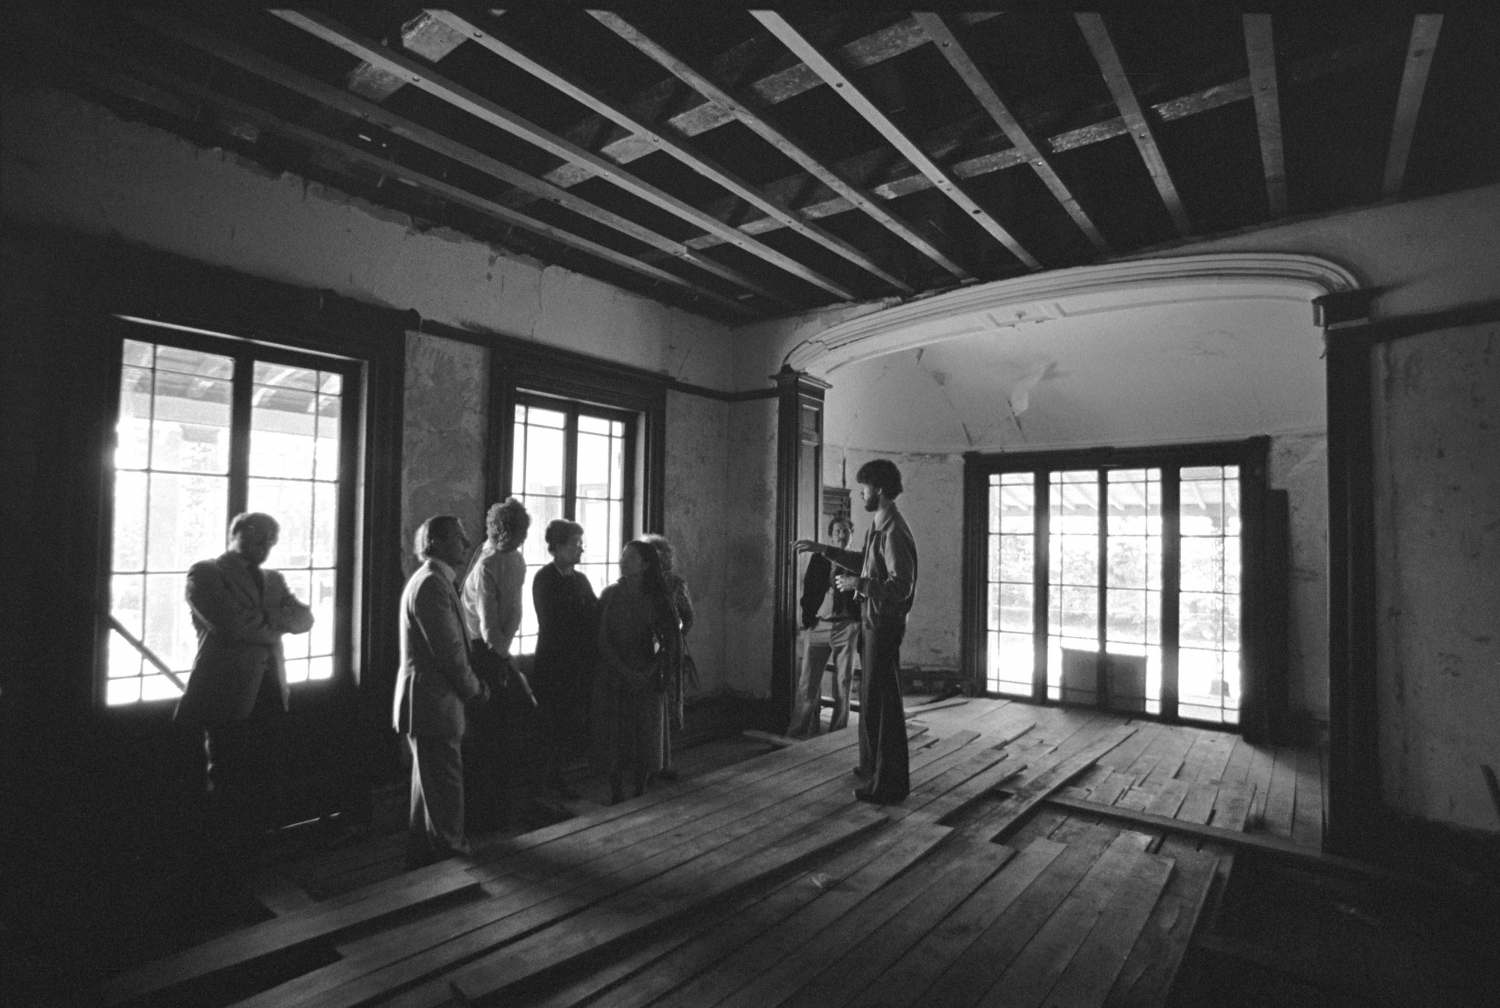 people inspecting room of old house with loose floorboards underfoot, large french doors, a large archway and exposed ceiling above.